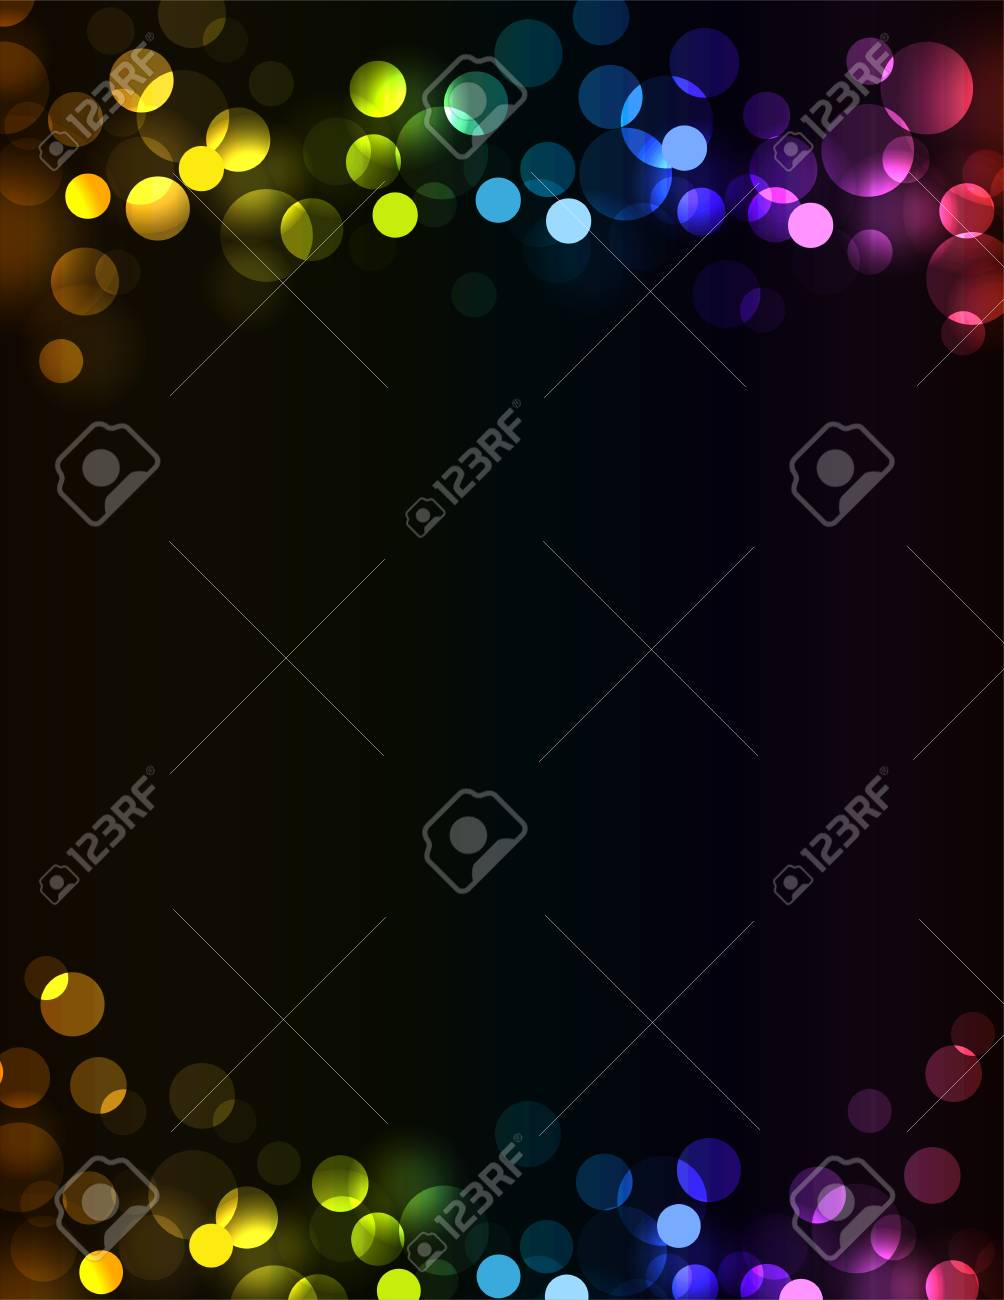 New Year Party Invitation Background Royalty Free Cliparts Vectors